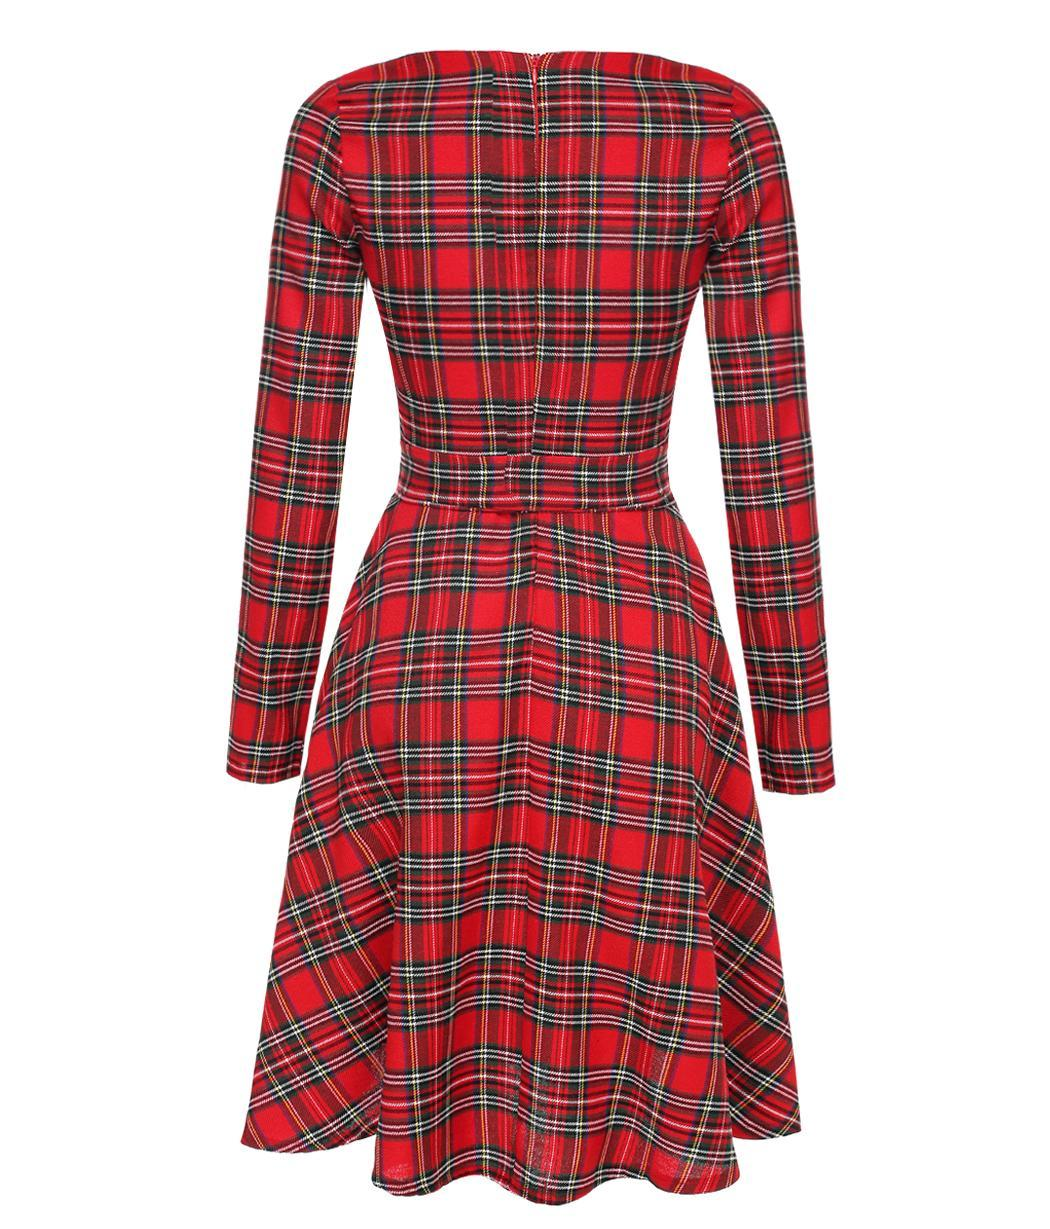 Womens Black Red Plaid Check Flannel Long Sleeve Waist